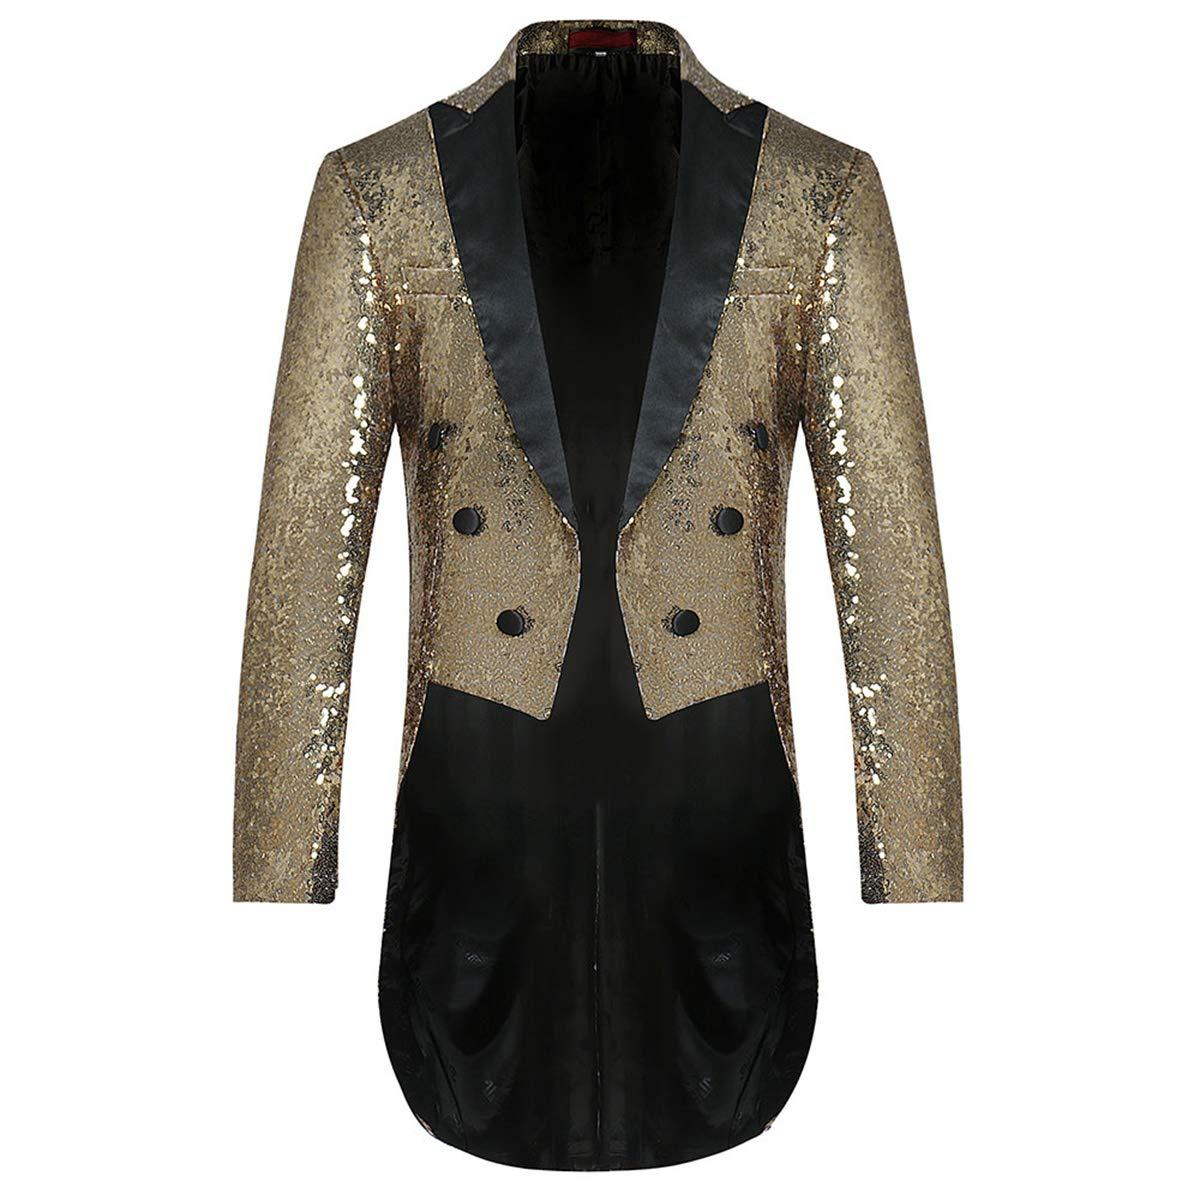 Mens Tails Slim Fit Tailcoat Sequin Dress Coat Swallowtail Dinner Party Wedding Blazer Suit Jacket Golden by Cloudstyle